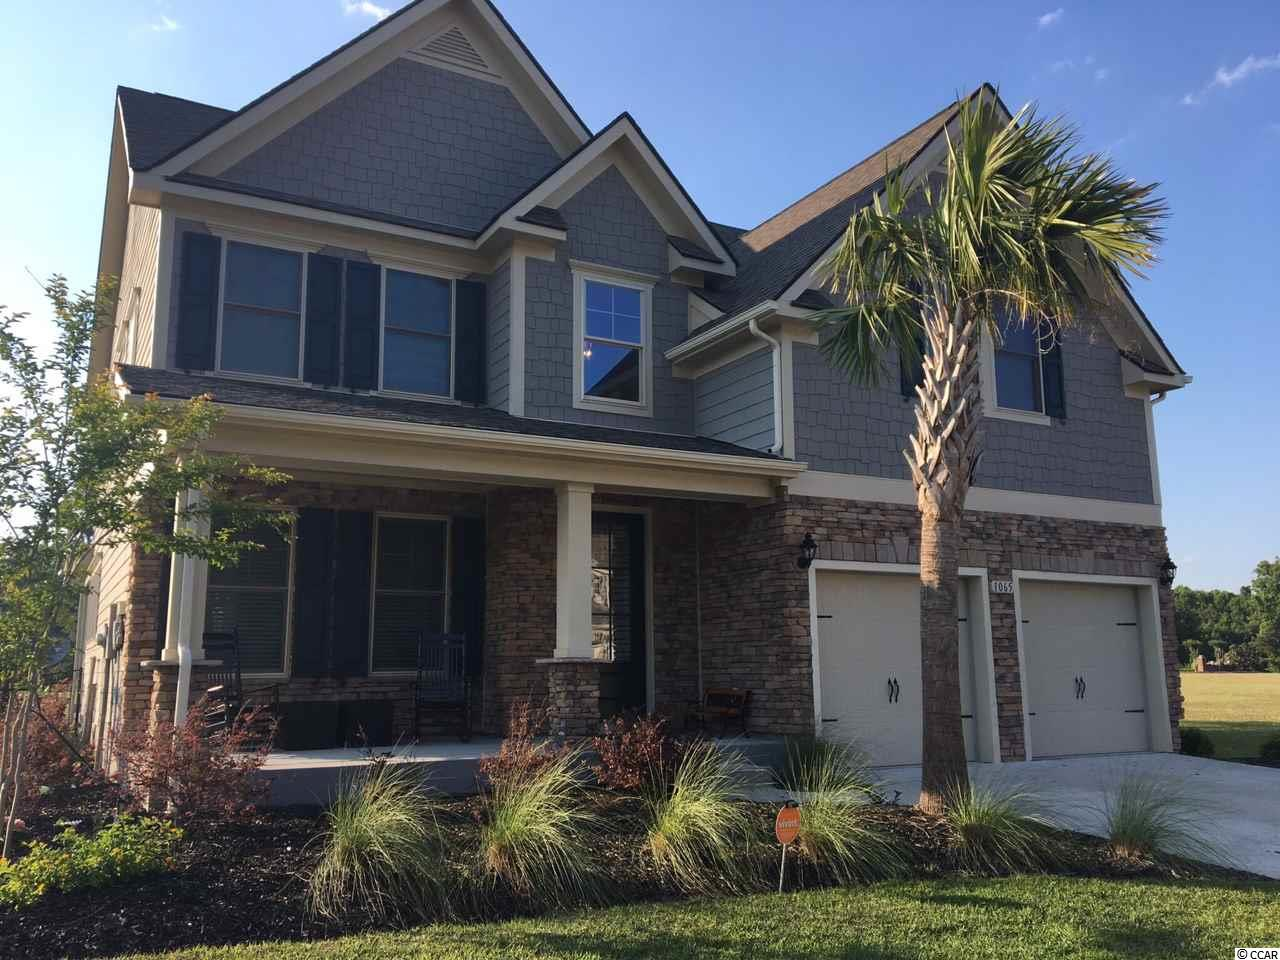 1065 East Isle of Palms Ave, Myrtle Beach, SC 29579